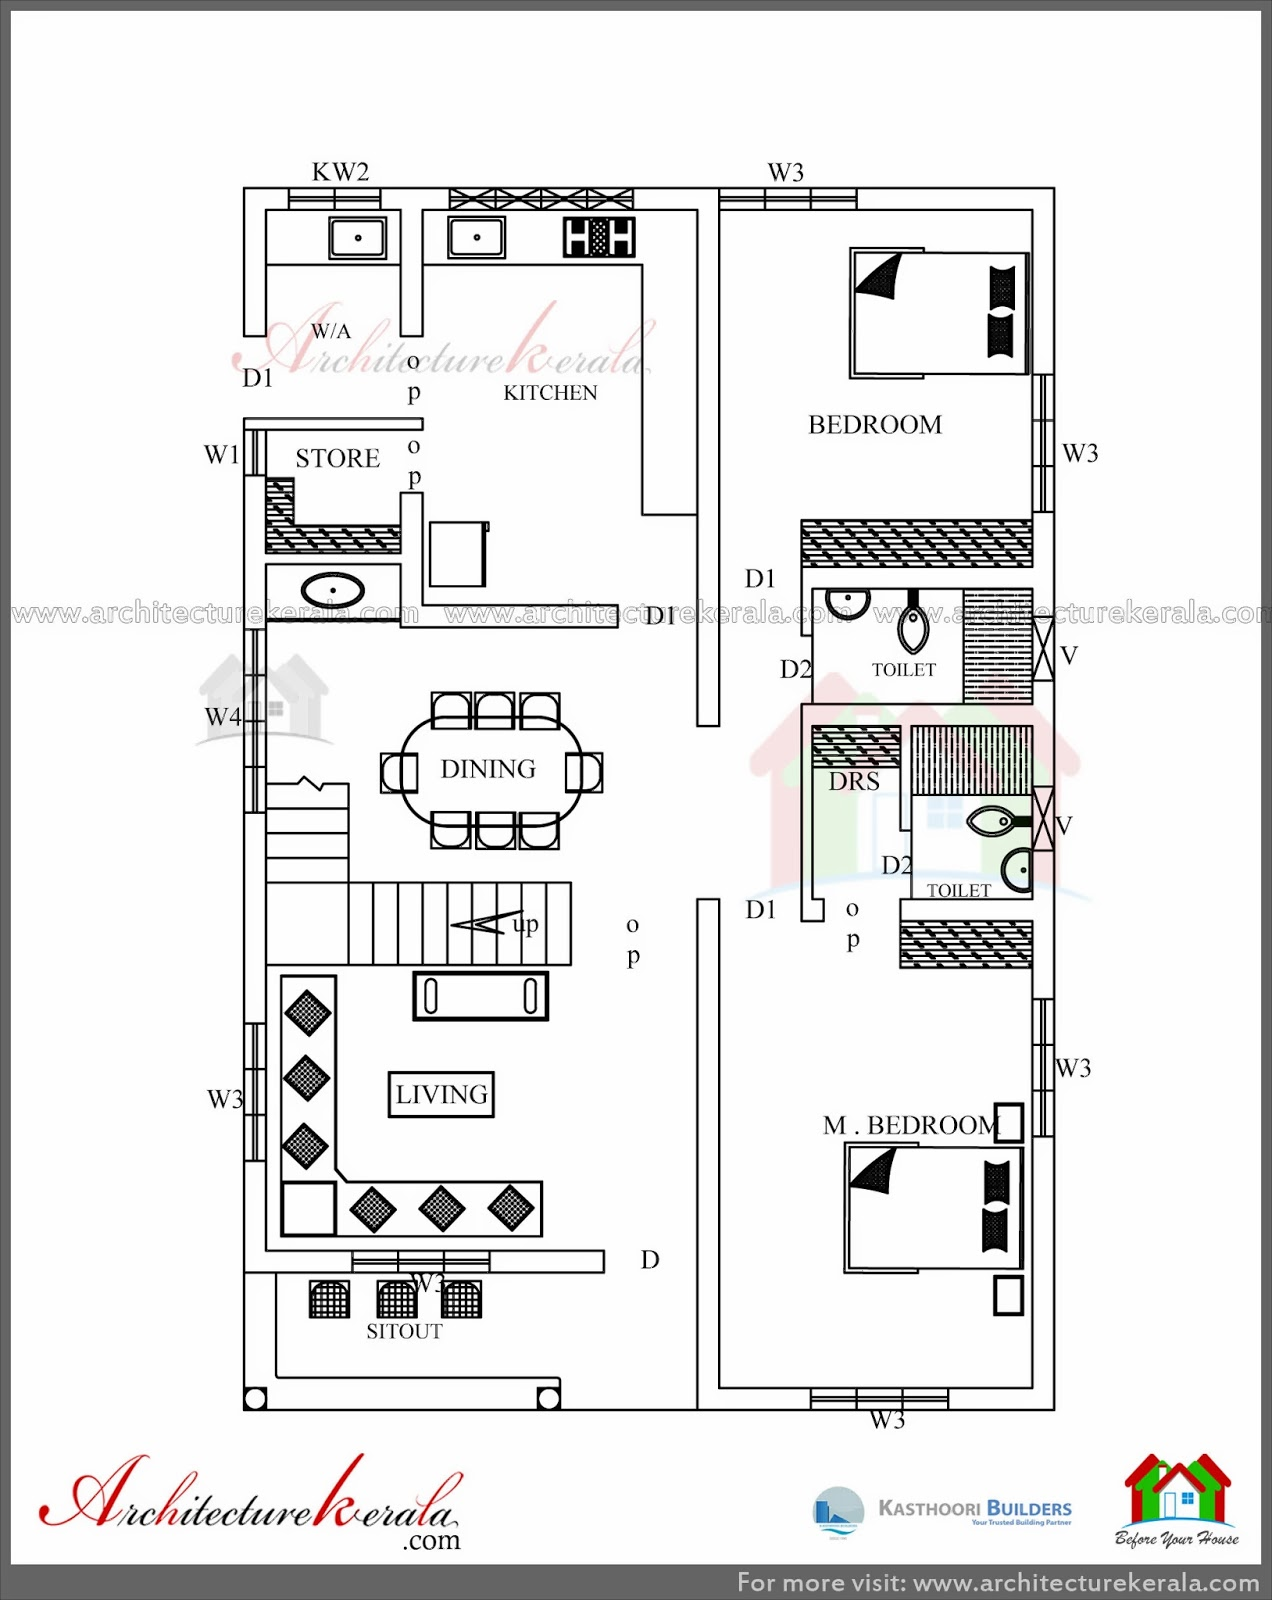 House plans 2400 square feet amazing house plans 2400 sq ft house plans